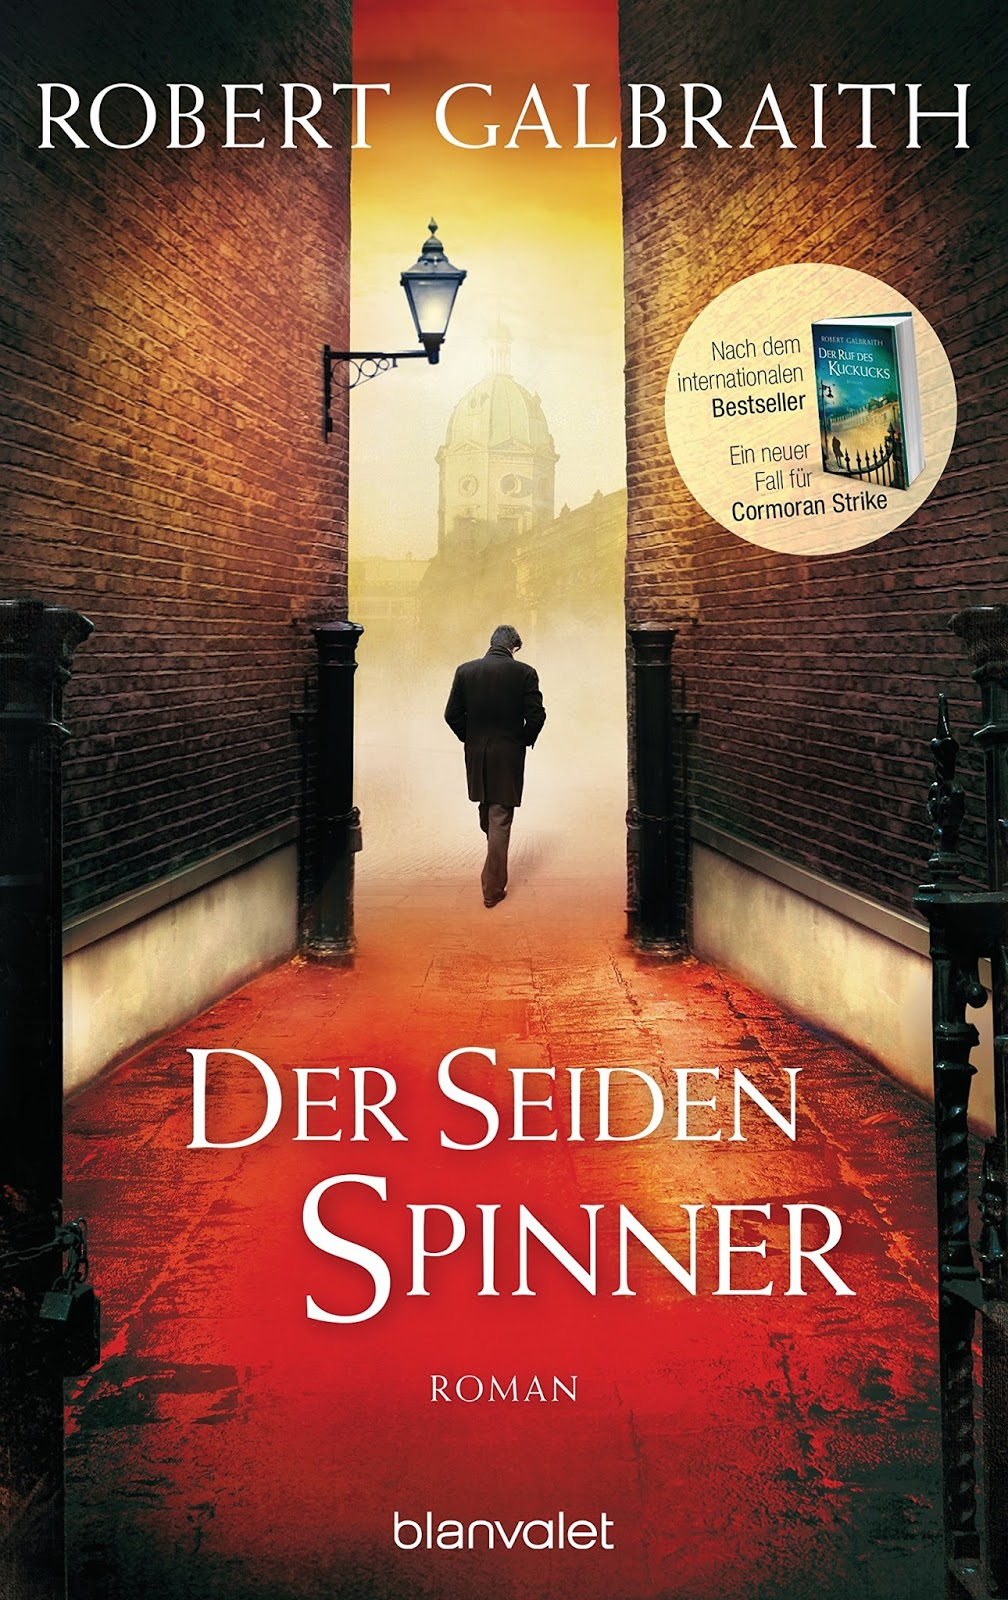 http://nothingbutn9erz.blogspot.co.at/2015/01/der-seidenspinner-robert-galbraith.html